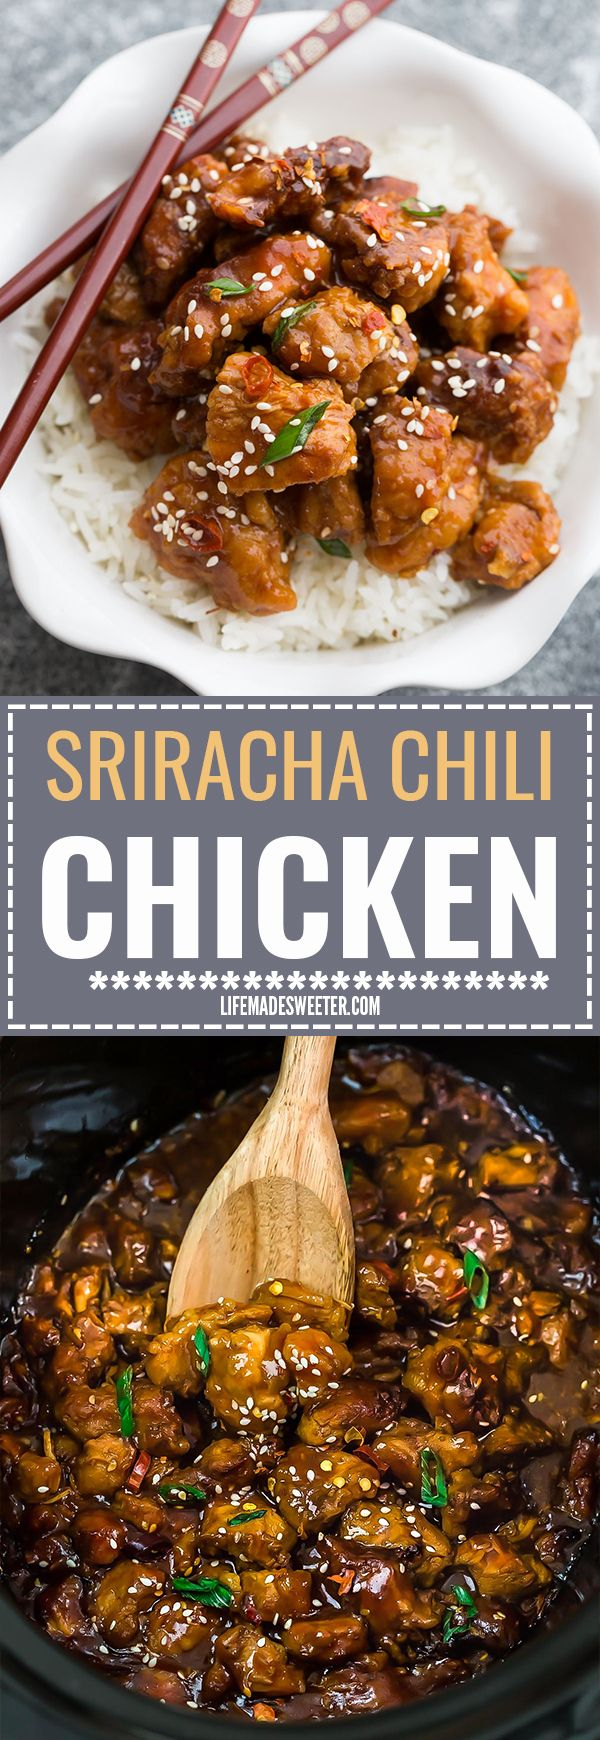 Slow Cooker Sriracha Chili Chicken Meal Prep Lunch Bowls - coated in a sweet, savory and spicy sauce that is even better than your local takeout restaurant! Best of all, it's full of authentic flavors and super easy to make with just 15 minutes of prep time.Weekly meal prep for the week and leftovers are great for lunch bowls for work or school. #crockpotmealprep